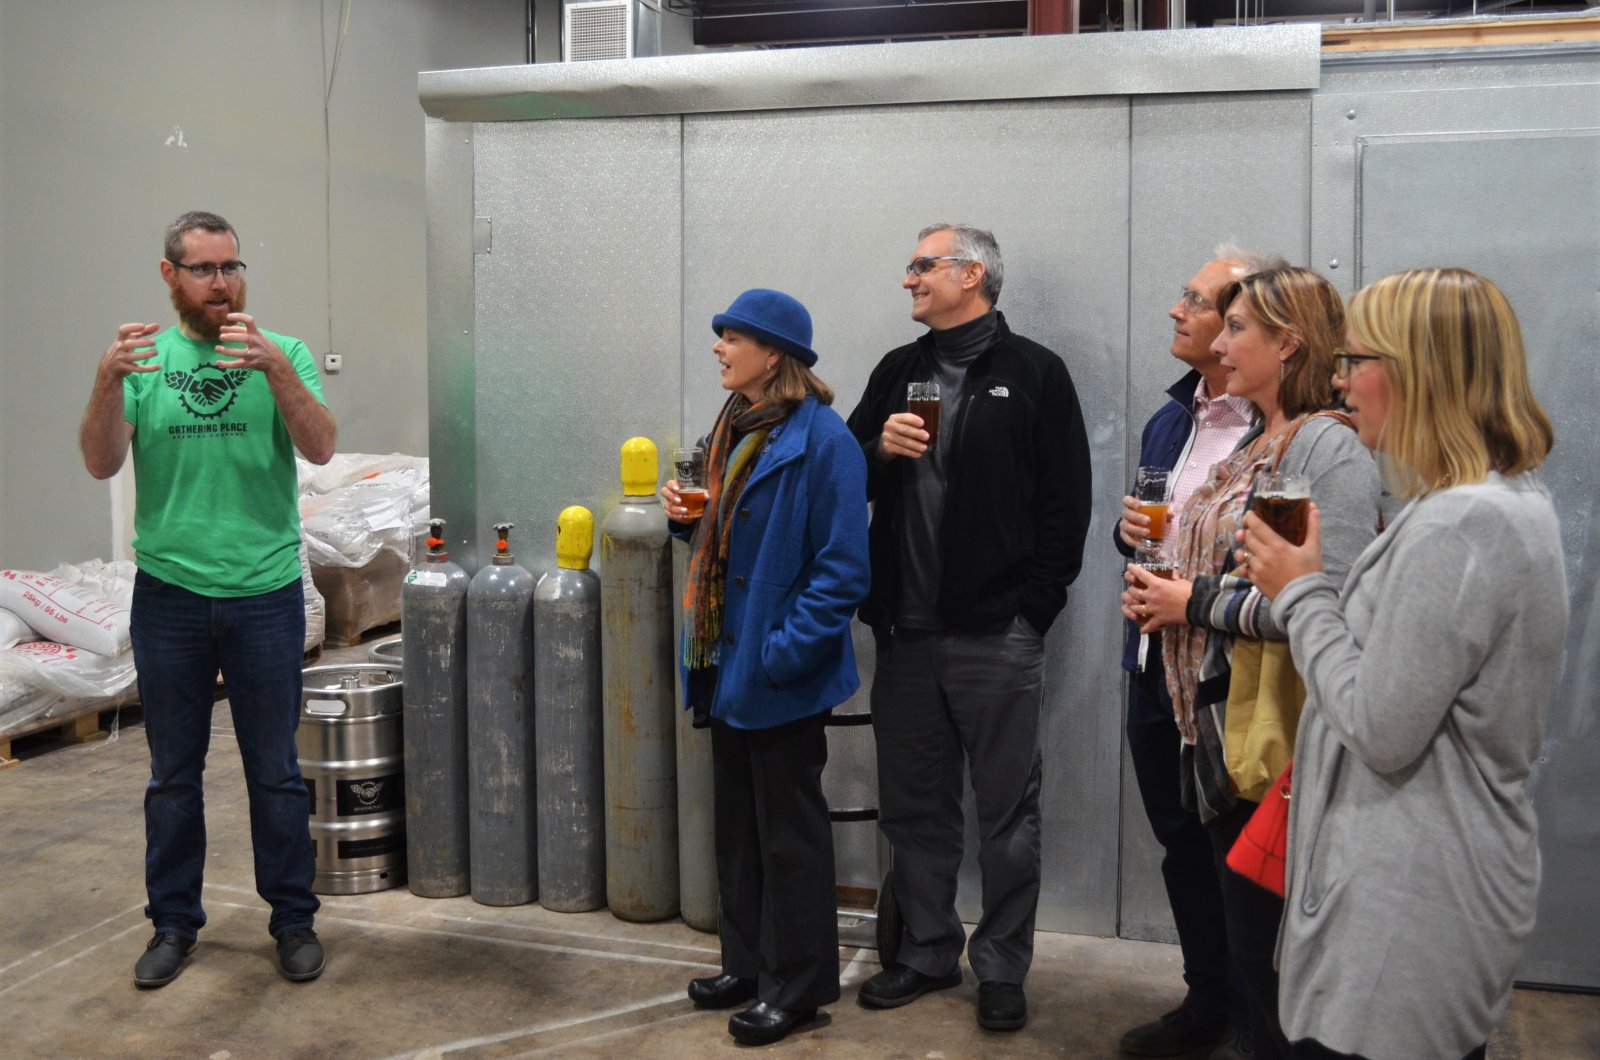 Brewery tour at Gathering Place Brewing Co.